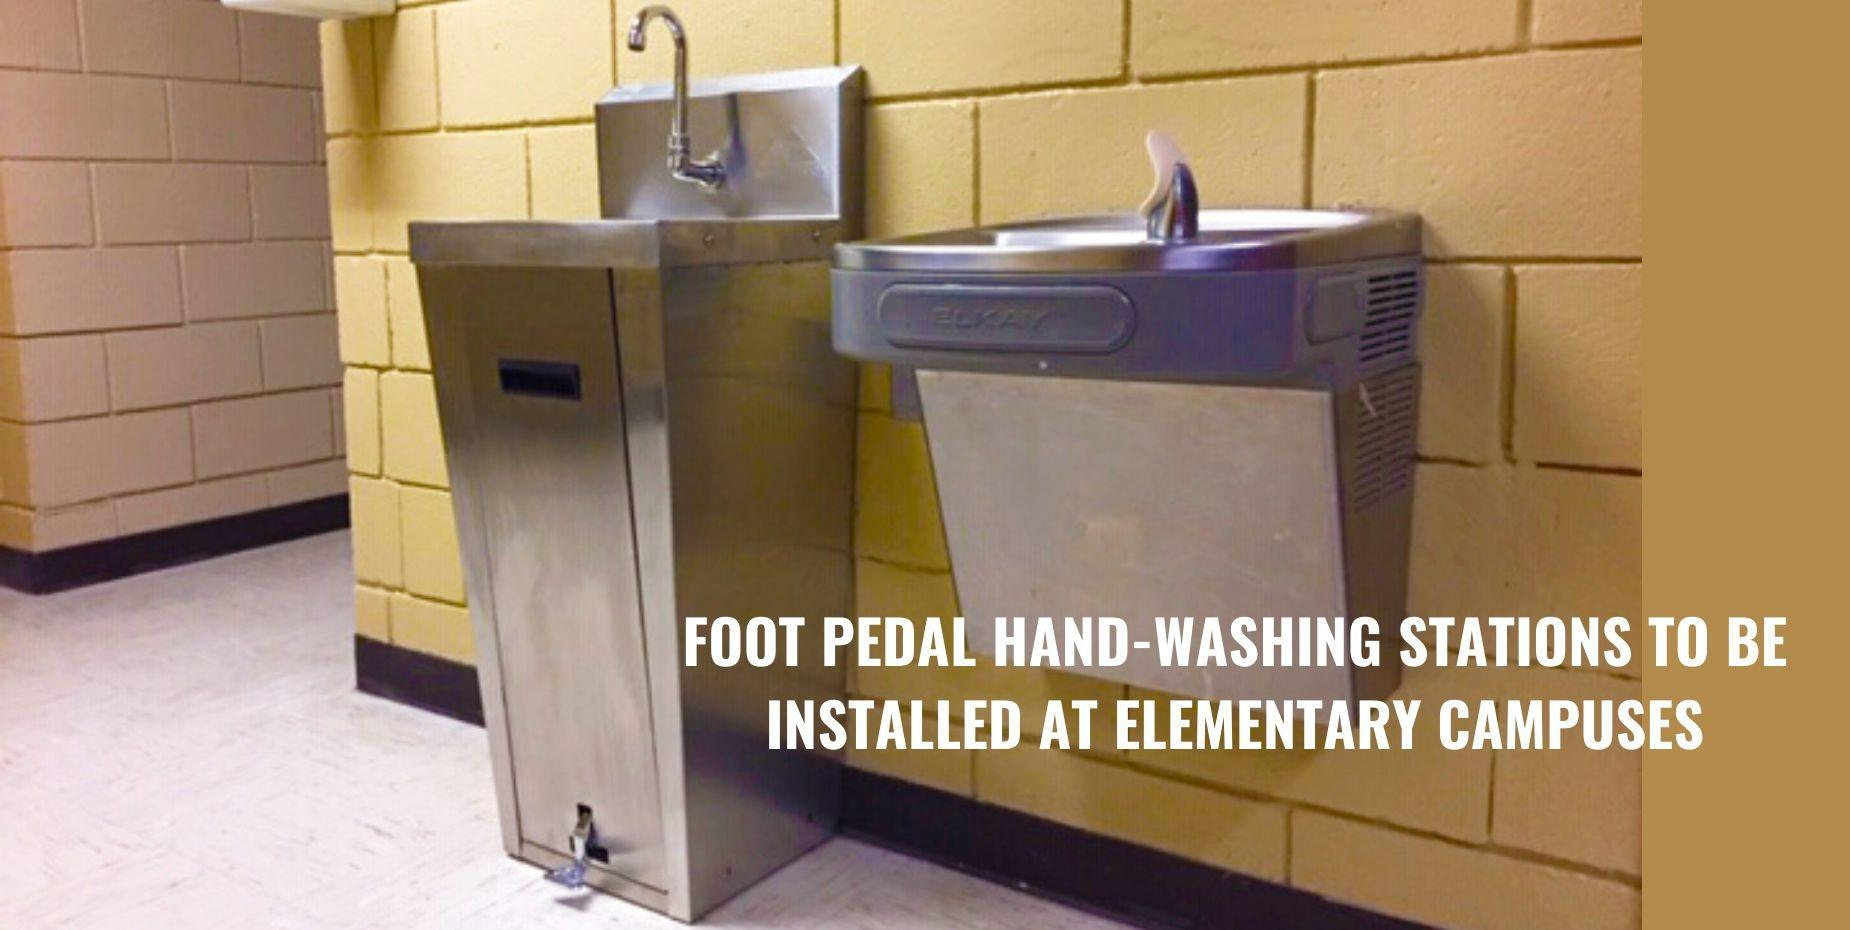 Foot pedal hand-washing stations to be installed at elementary campuses